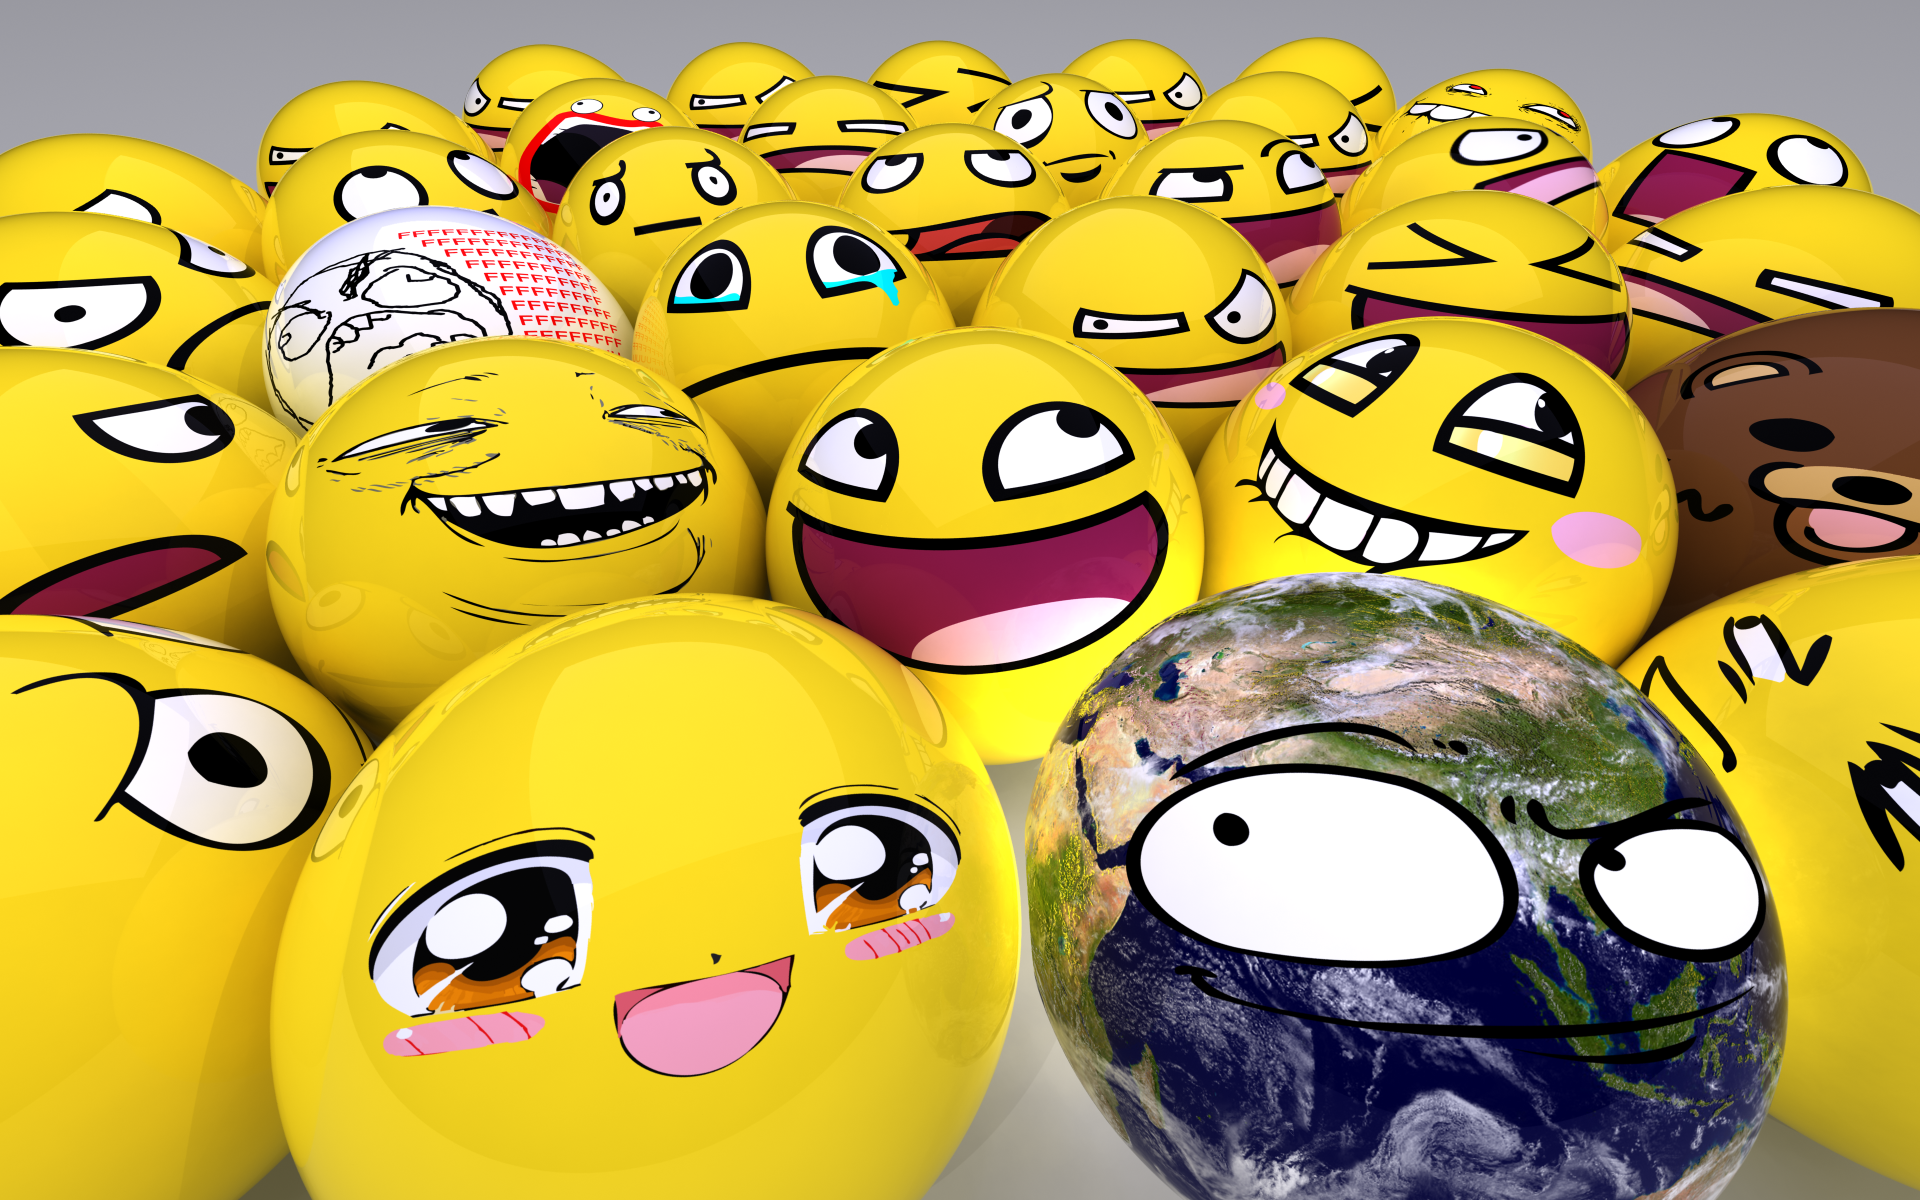 Awesome Smiley Face Wallpaper Awesome face wallpaper 1920x1200